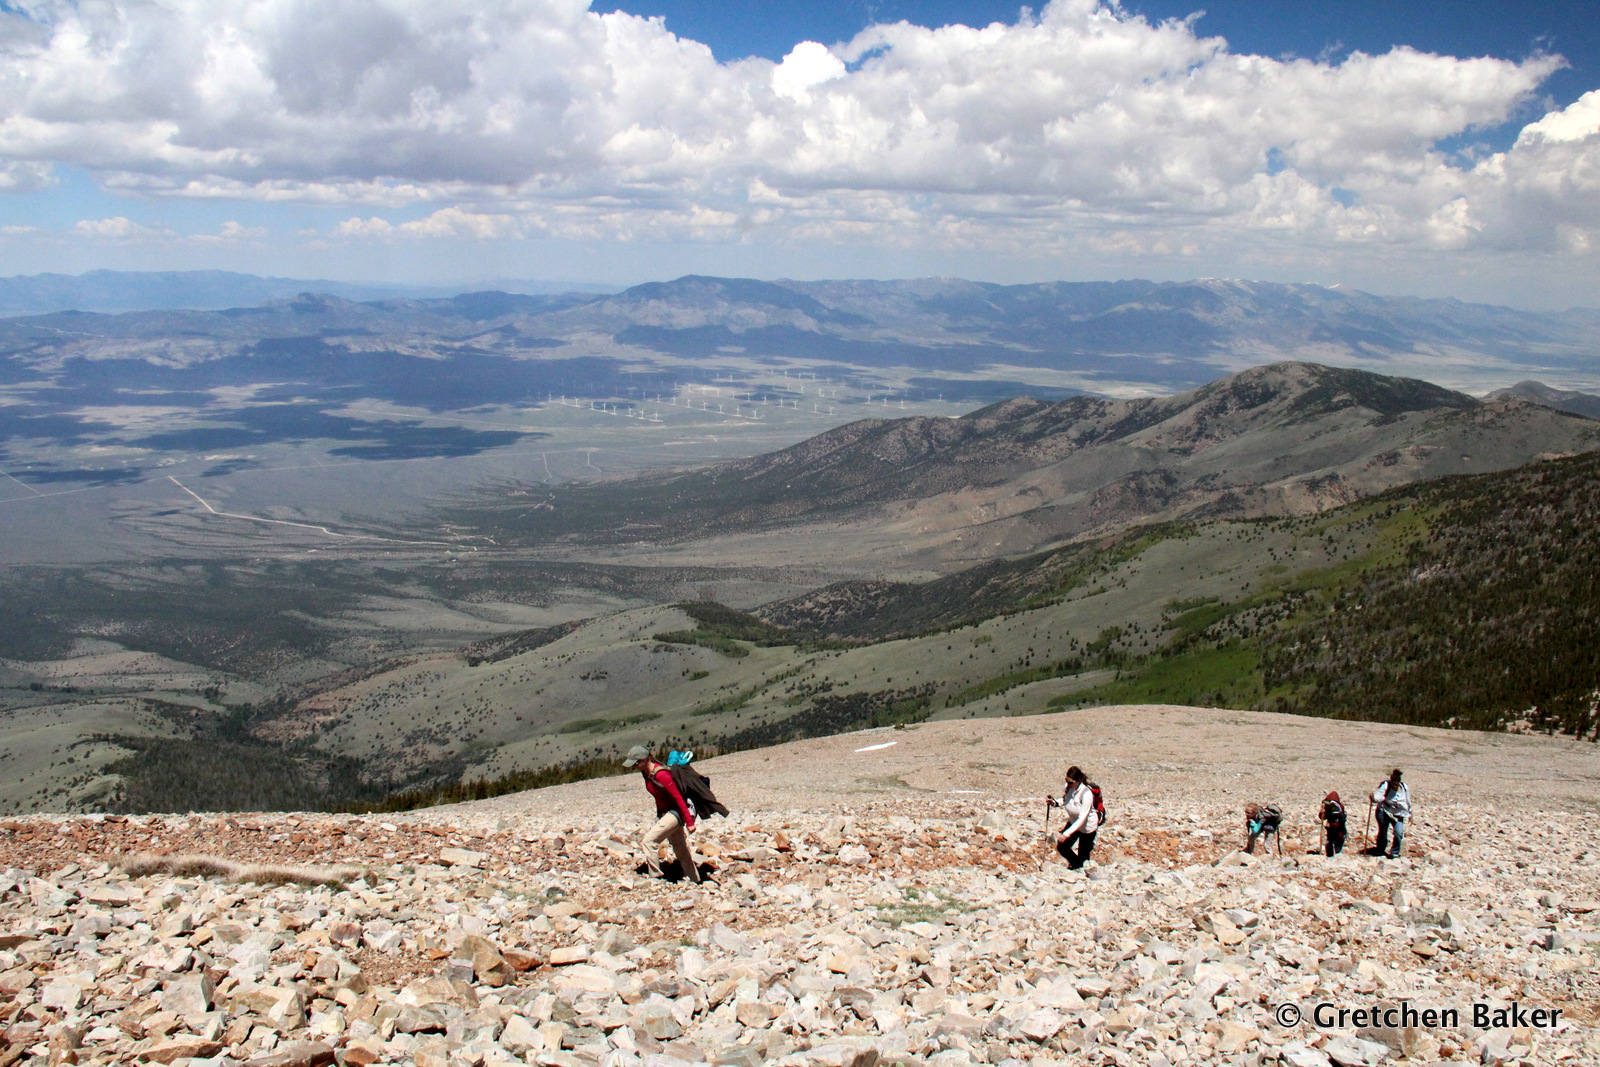 Gretchen Baker_hiking up Wheeler Peak with windmills and Spring Valley in background.JPG